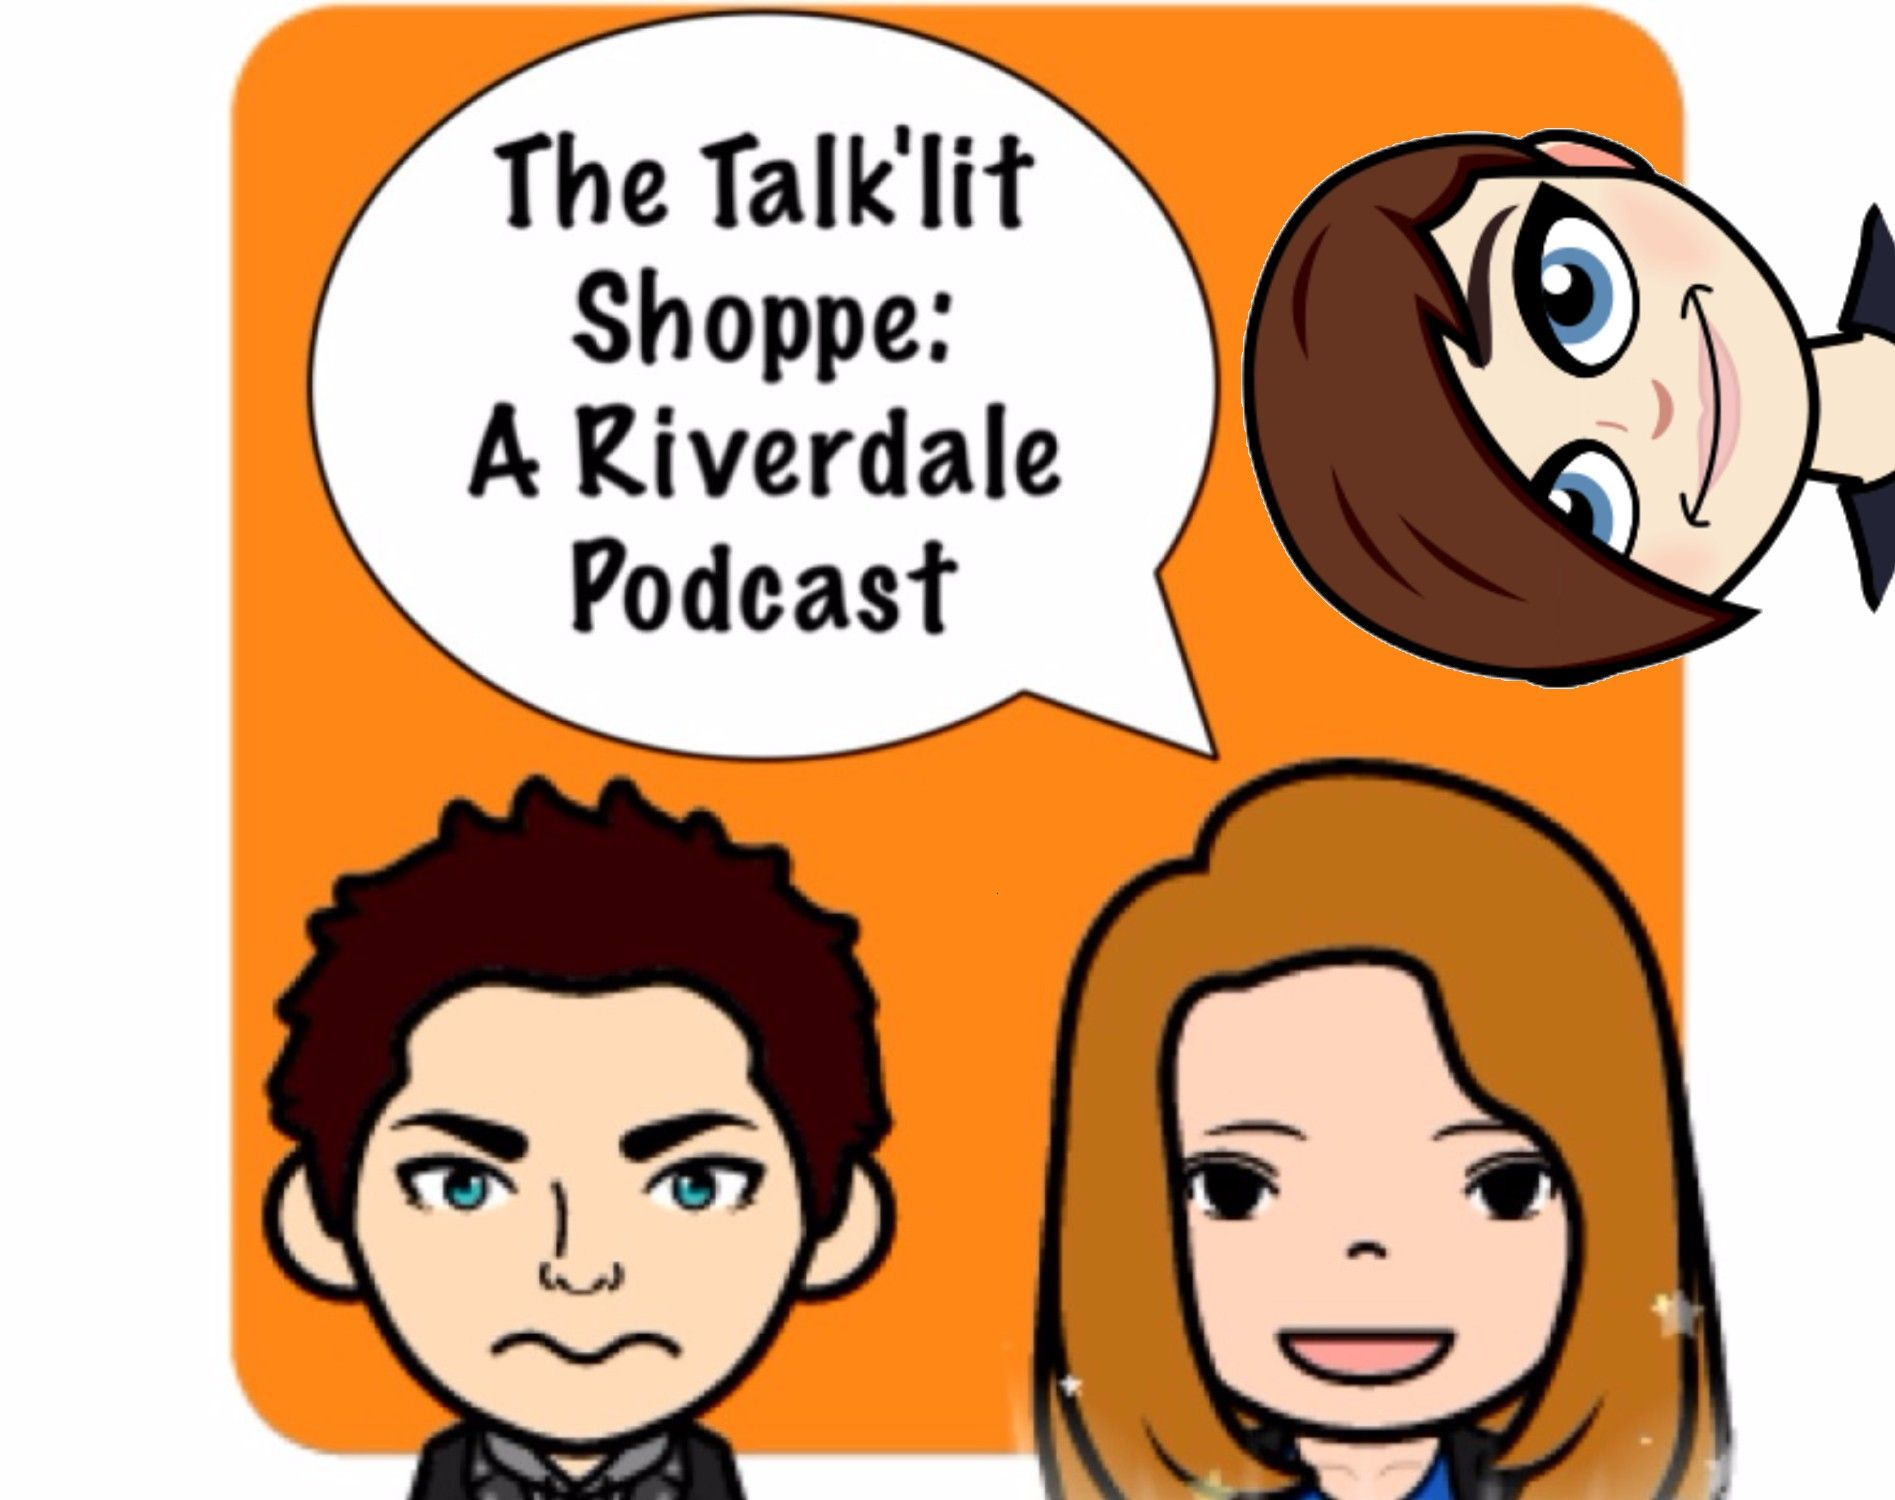 The Talk'lit Shoppe - Episode 2